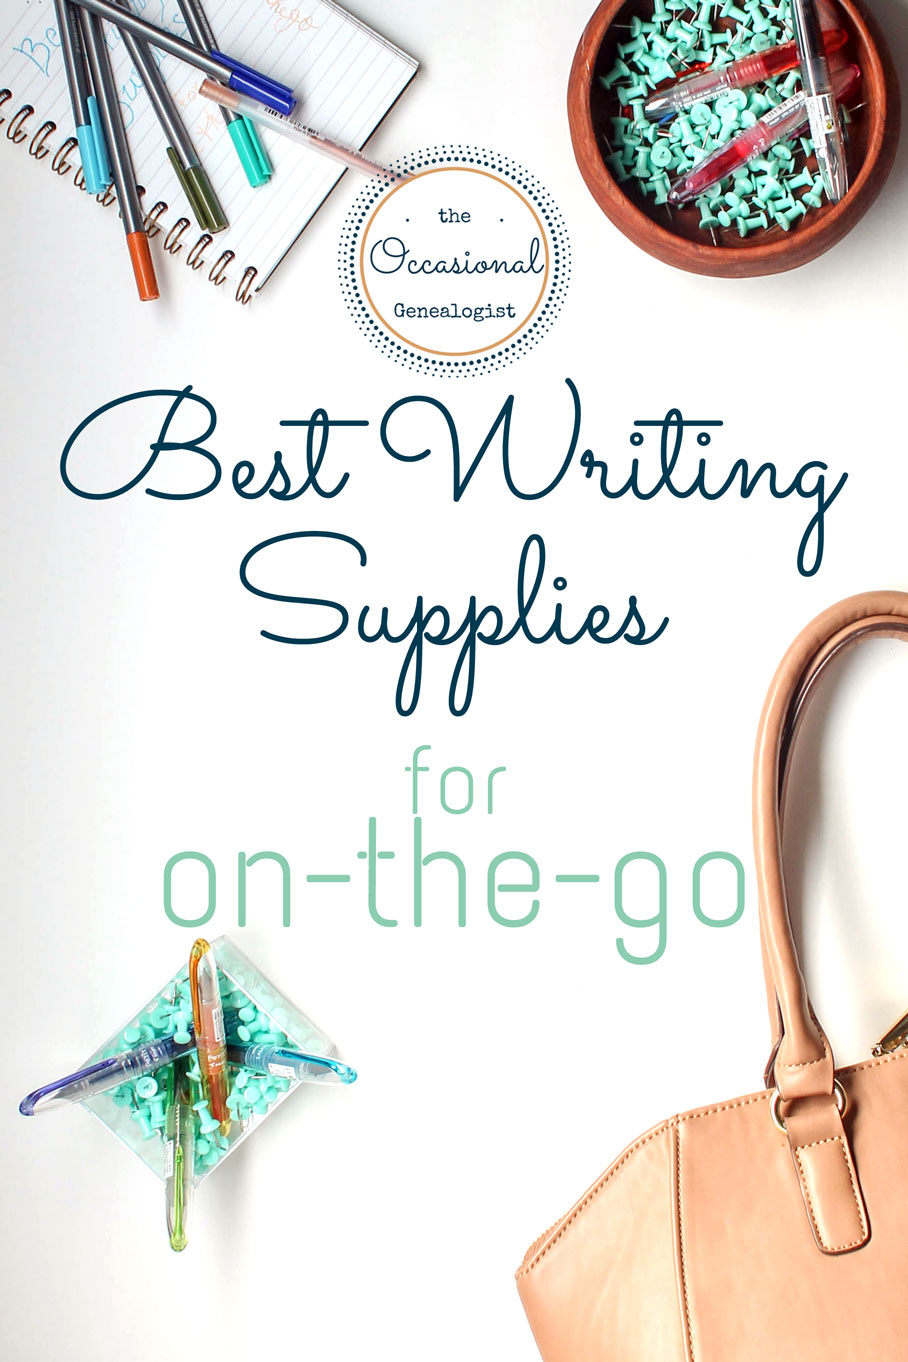 Bullet journal or DIY planner, you need a good notebook if you want to write on the go. Here are my favorites that stand up to fountain pens and markers. | The Occasional Genealogist